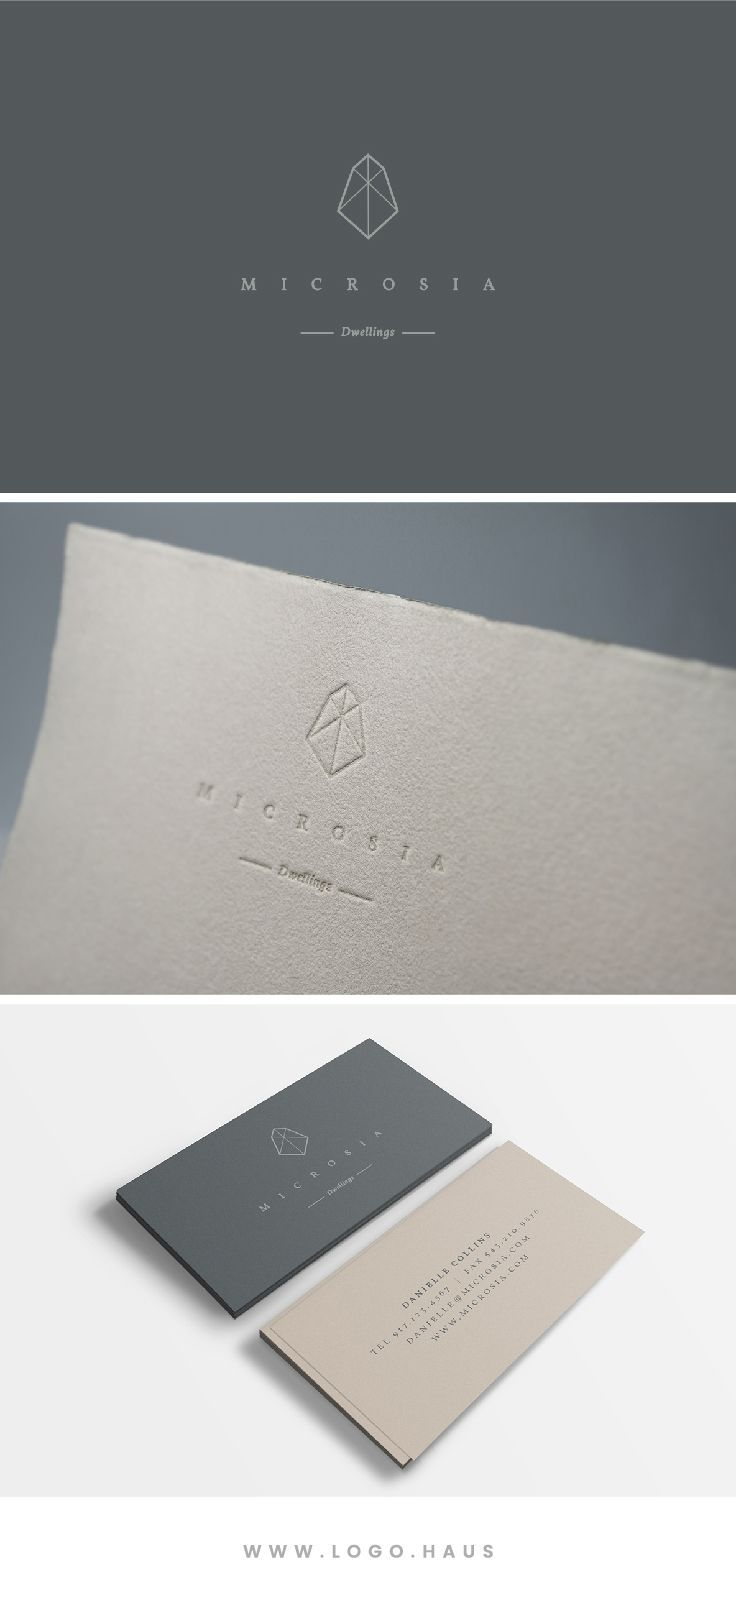 Microsia Pinterest Haus Logos And Package Design